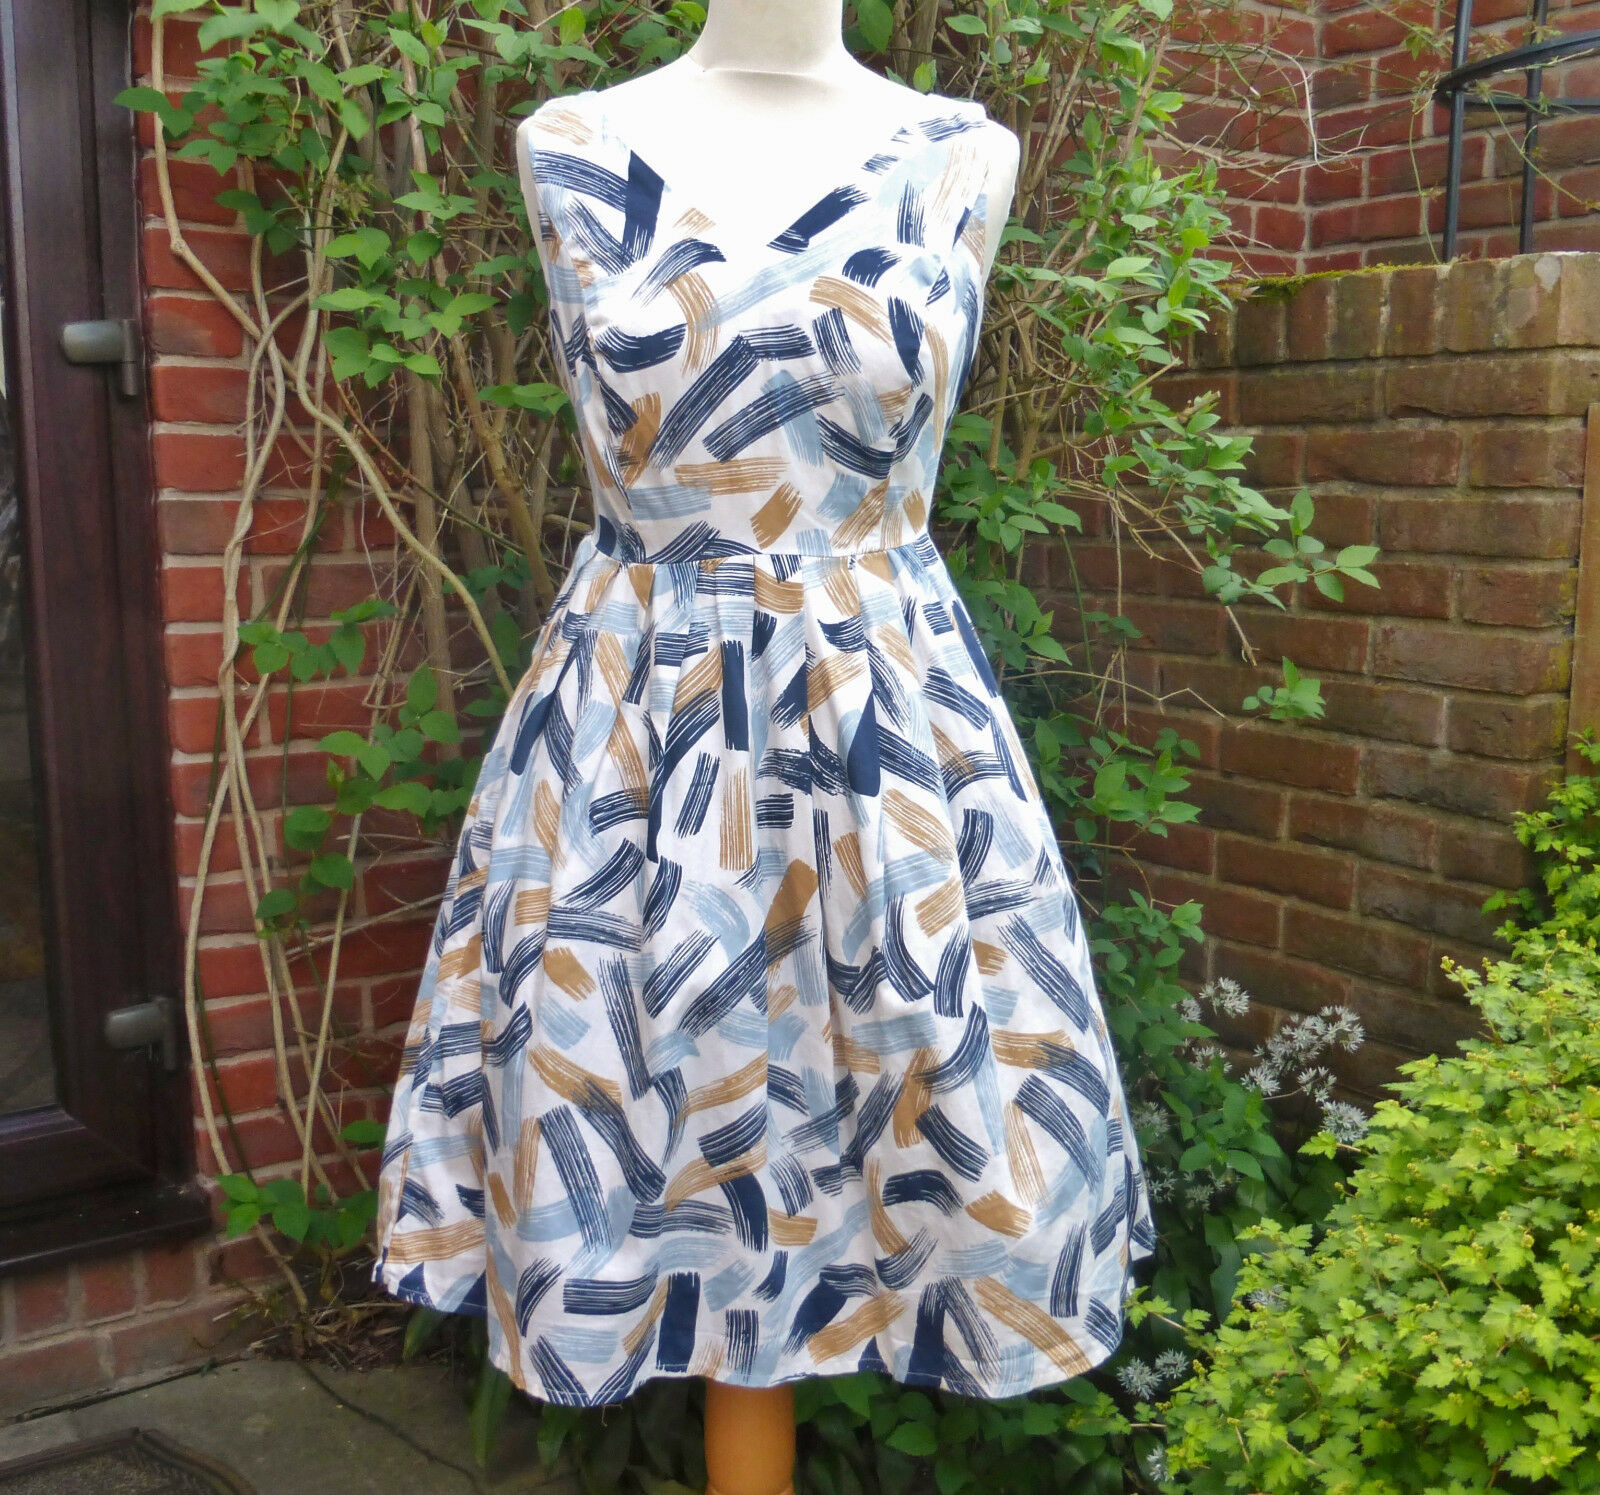 1950s style dress 14 Paint strokes by organic cotton Size 12